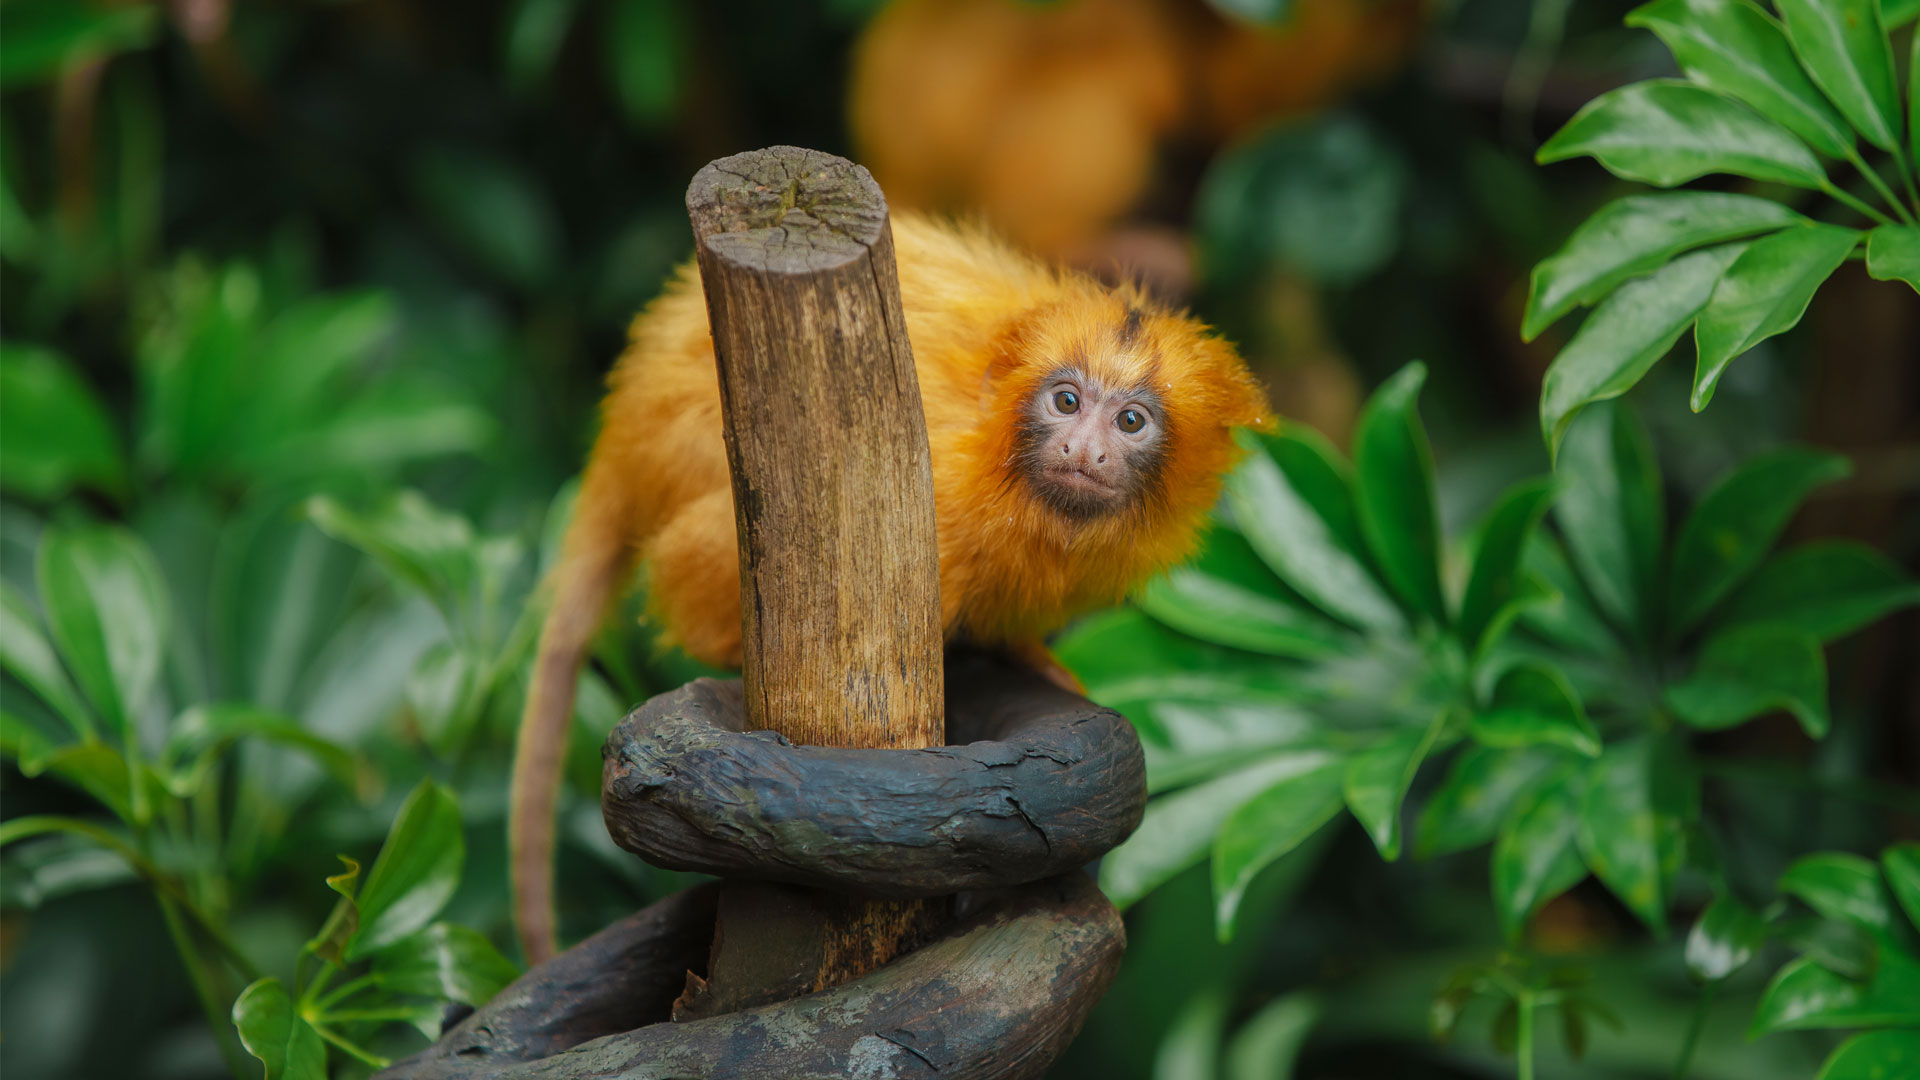 https://rfacdn.nz/zoo/assets/media/golden-lion-tamarin-twins-gallery-21.jpg